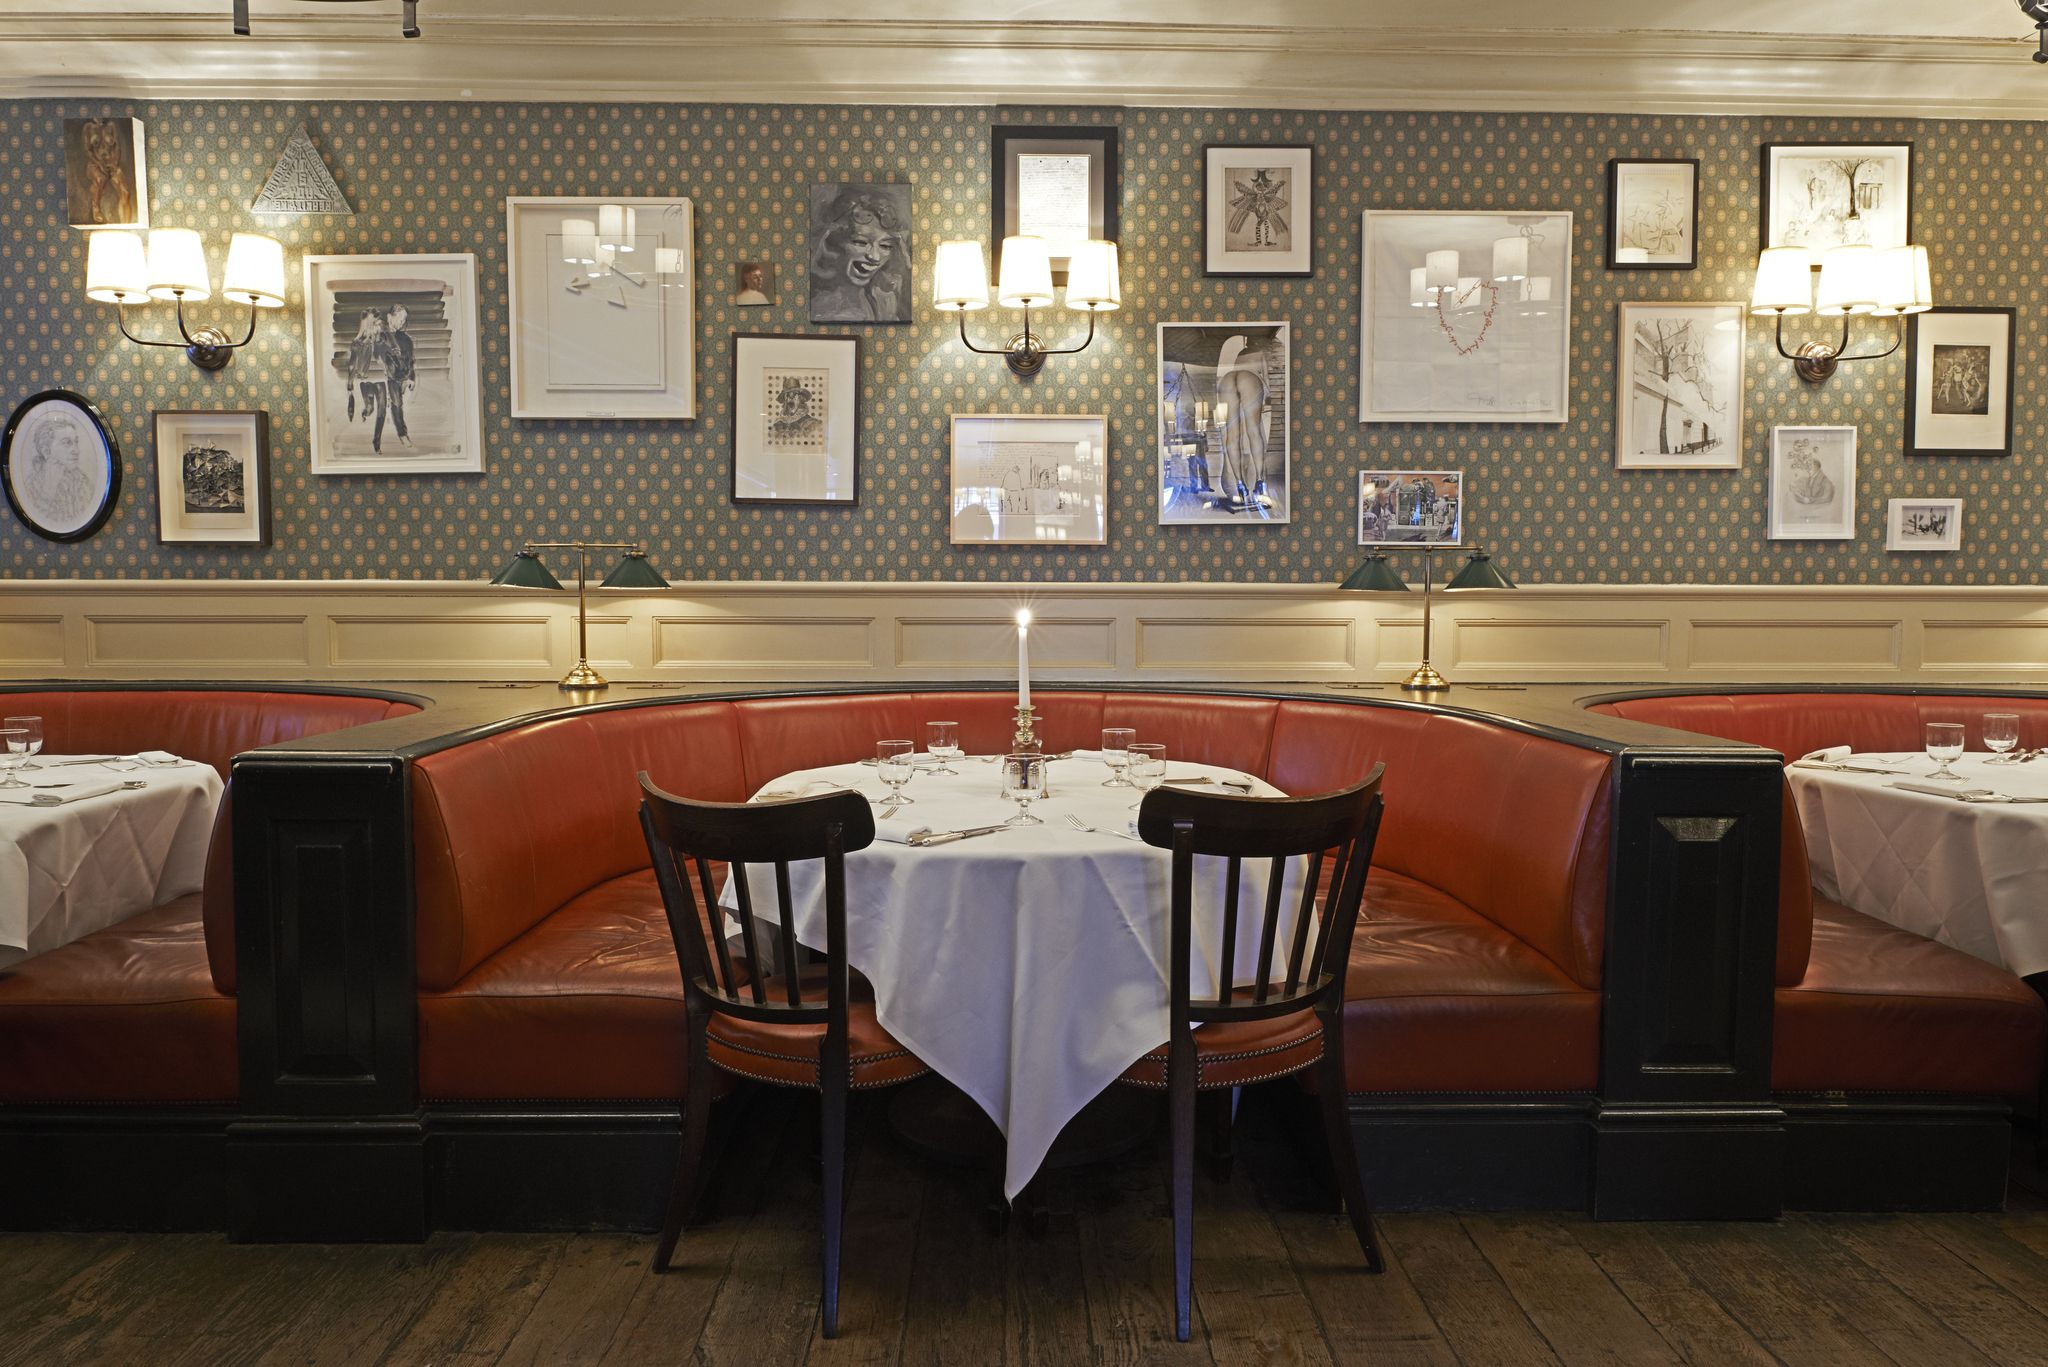 Dean Street Townhouse, London: \'a stylish place, indeed ...